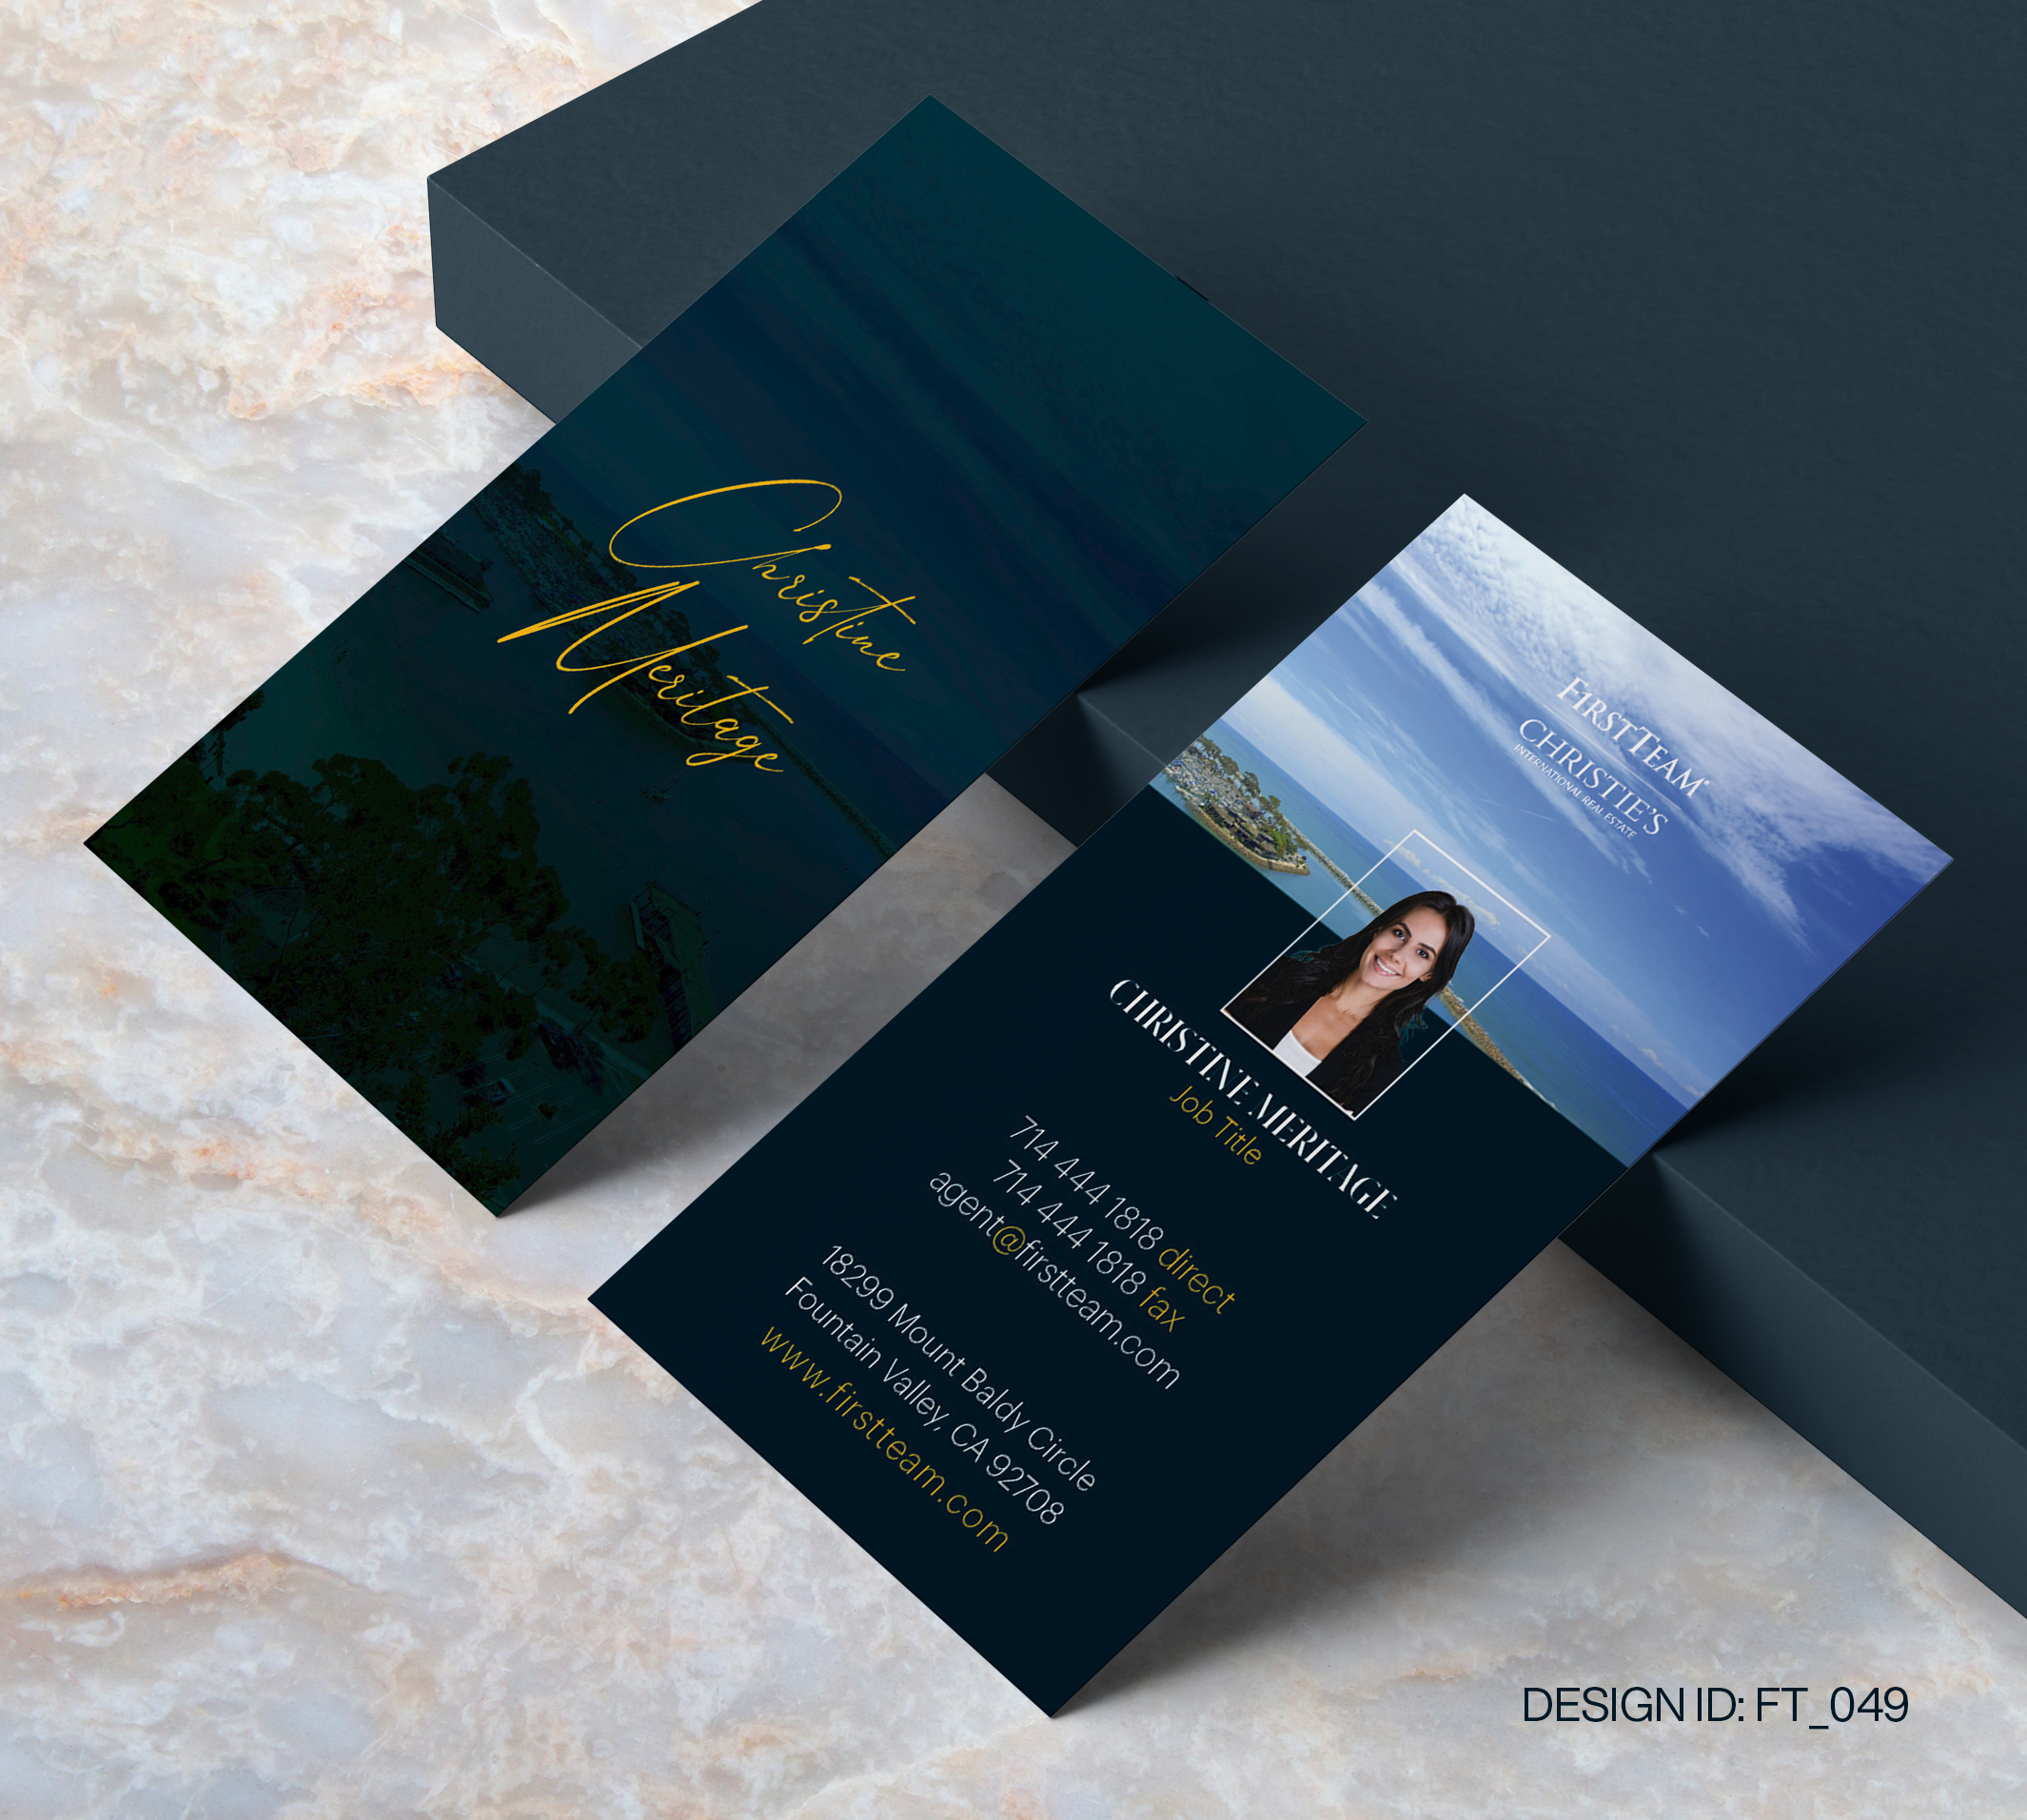 First Team Business Card Design  049